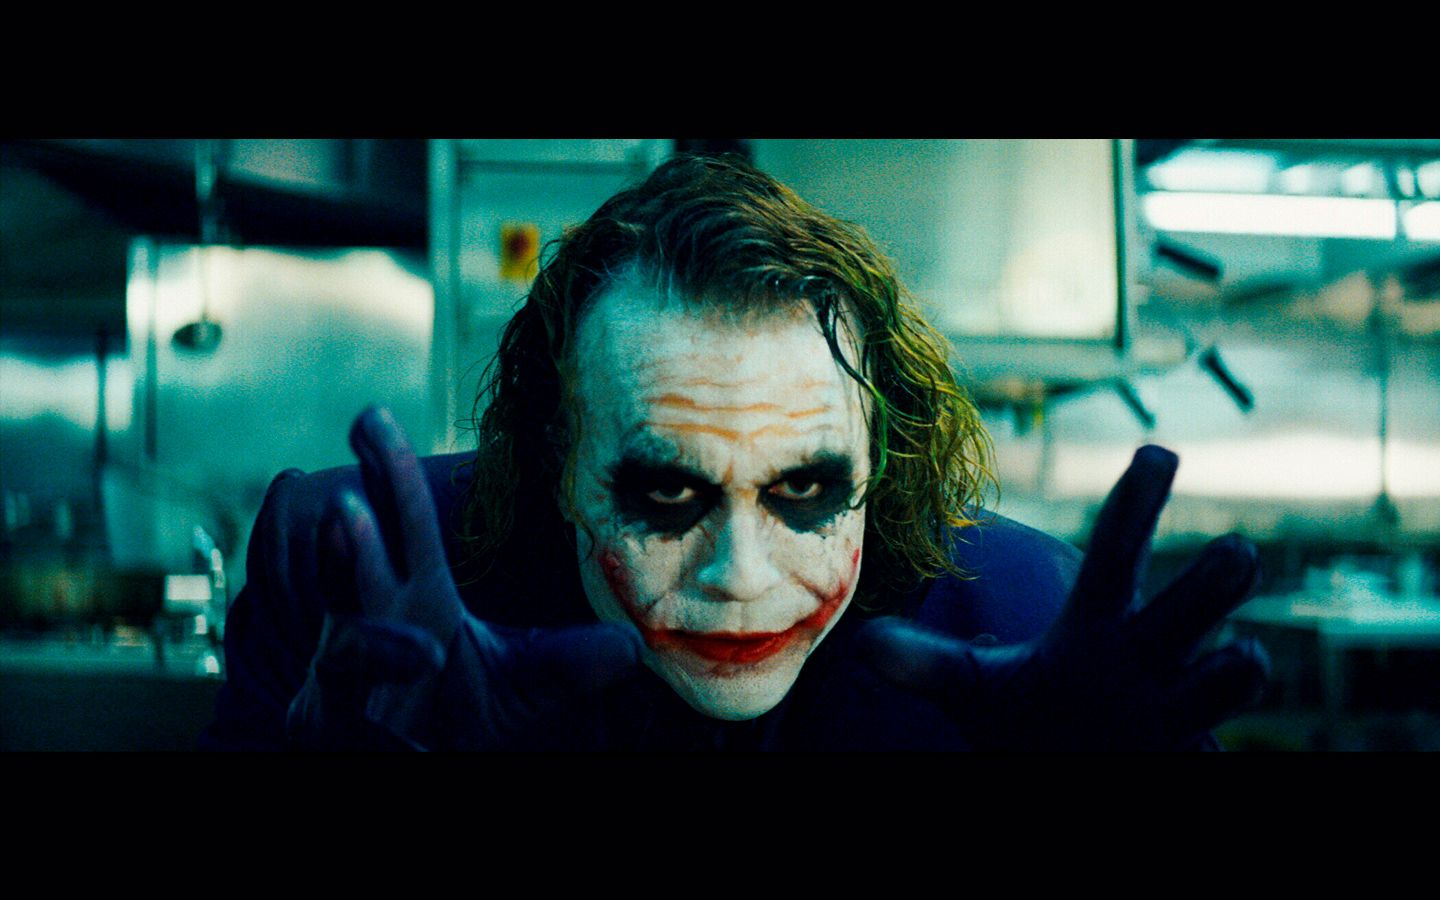 Heath Ledger Joker Face Why So Serious 1440x900